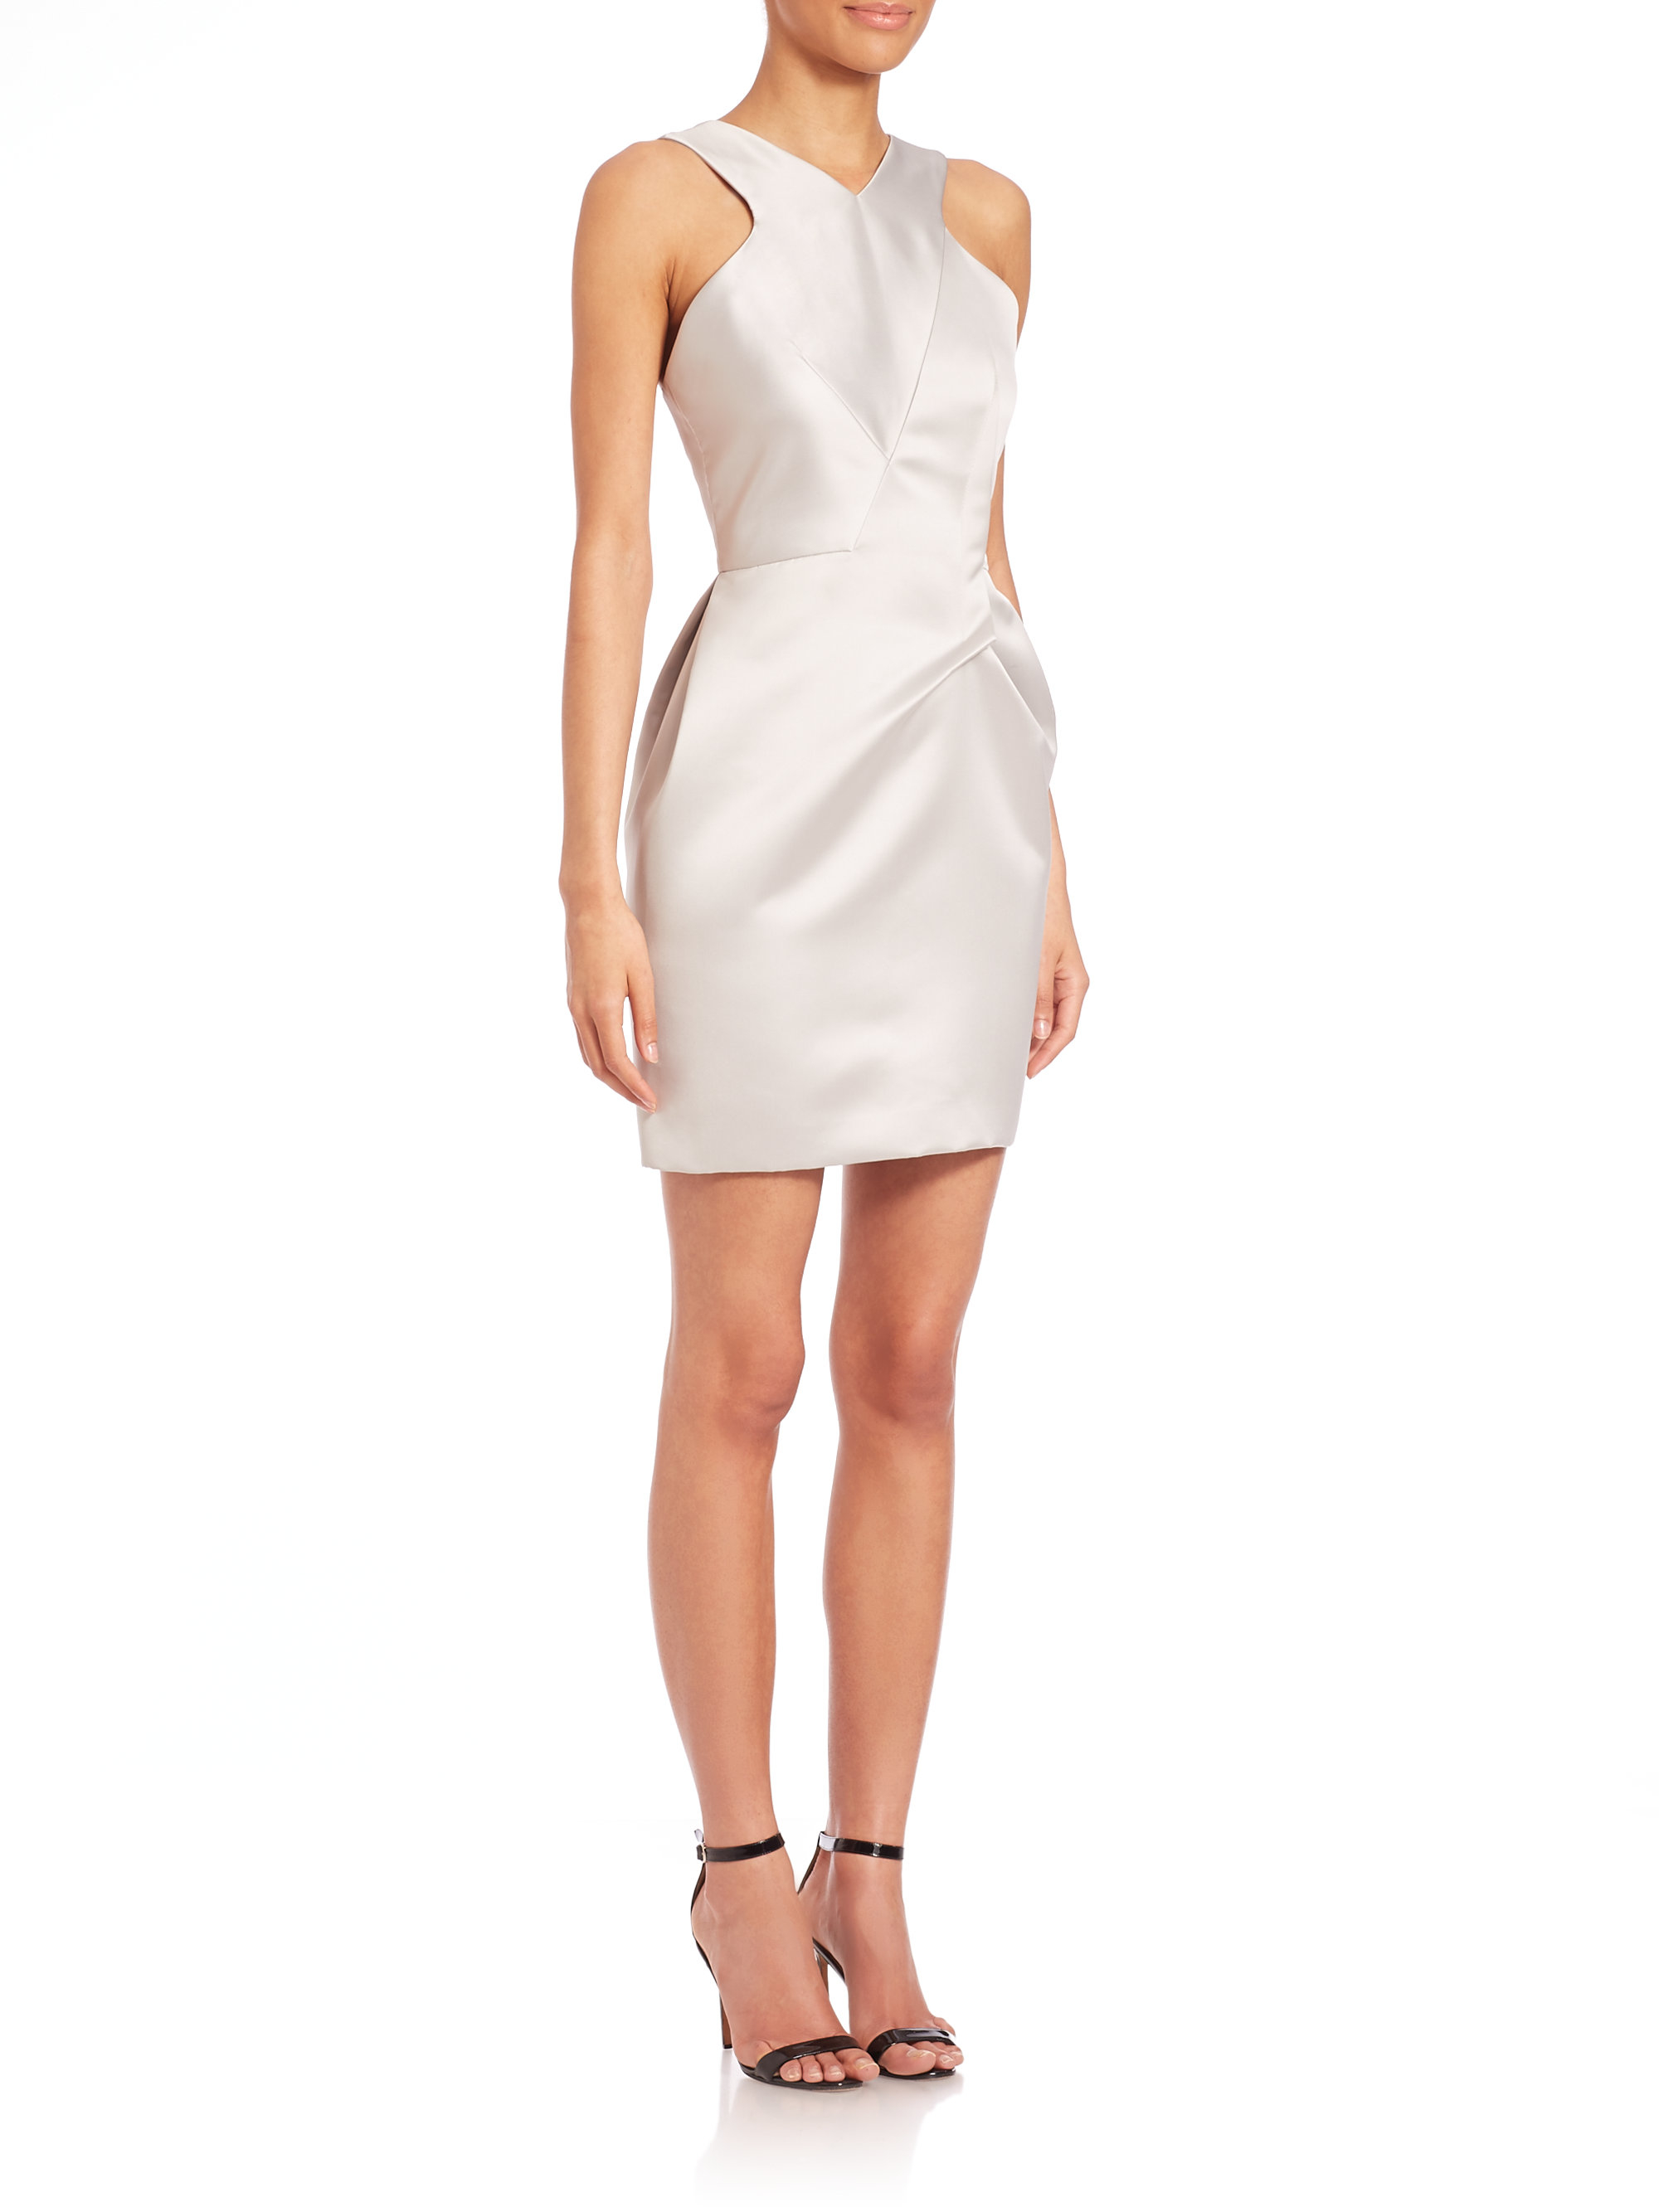 7a9caf4b20 roland-mouret-silver-lumley-satin-cocktail-dress -product-2-737687721-normal.jpeg